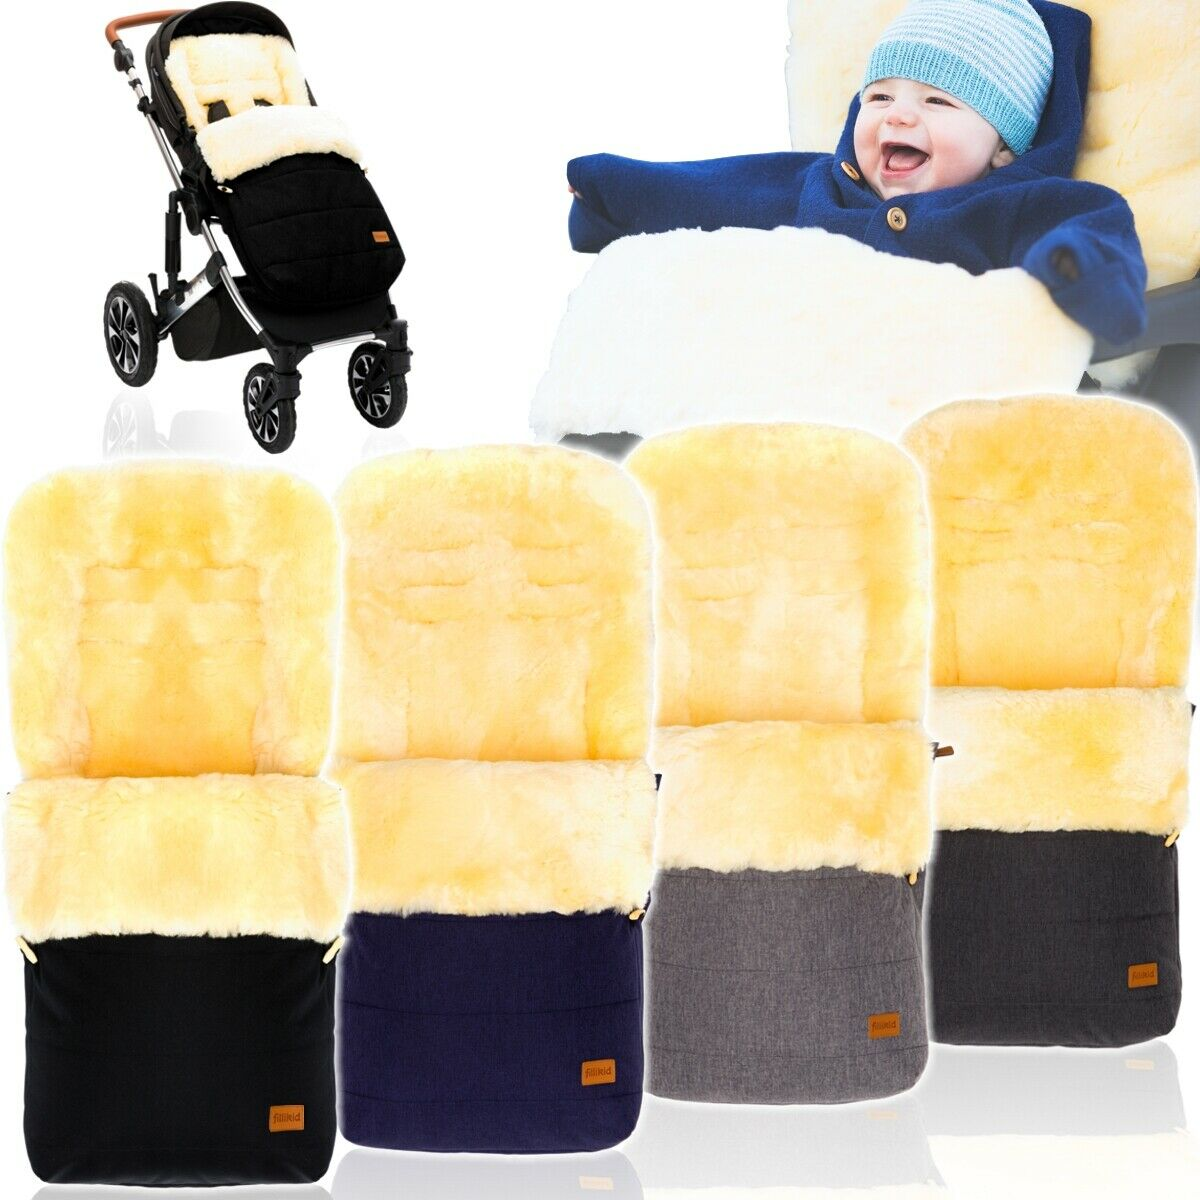 altabebe 100 lammfell winterfu sack kinder fu sack f r kinderwagen jogger buggy eur 79 99. Black Bedroom Furniture Sets. Home Design Ideas